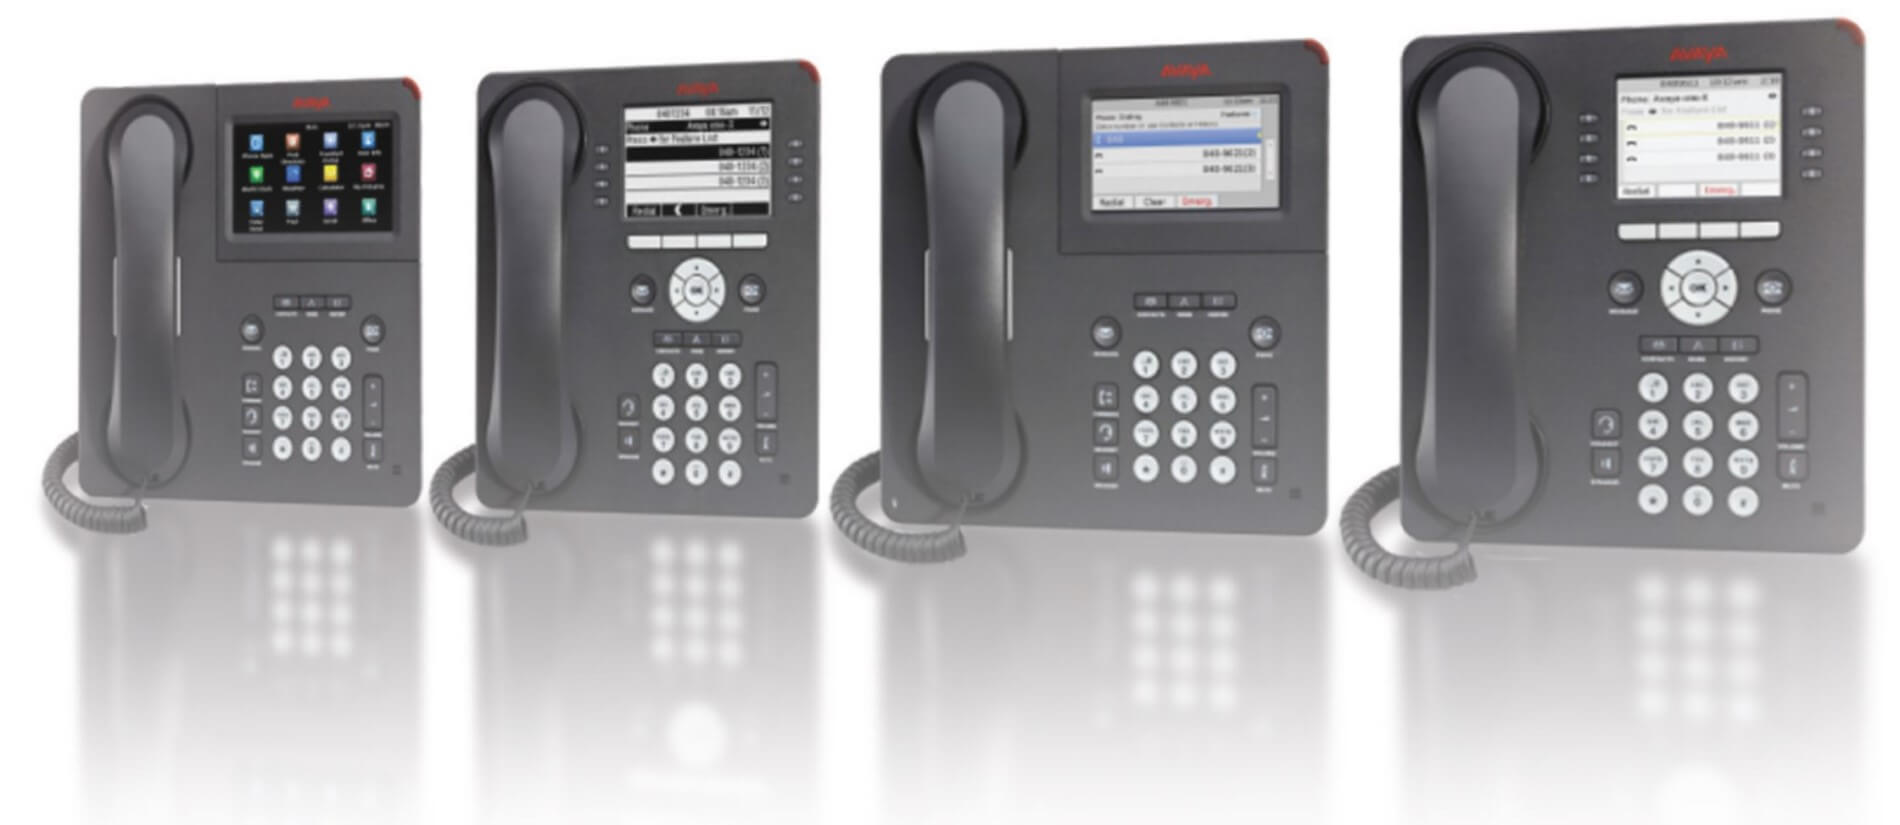 Avaya 9600 series IP Handsets